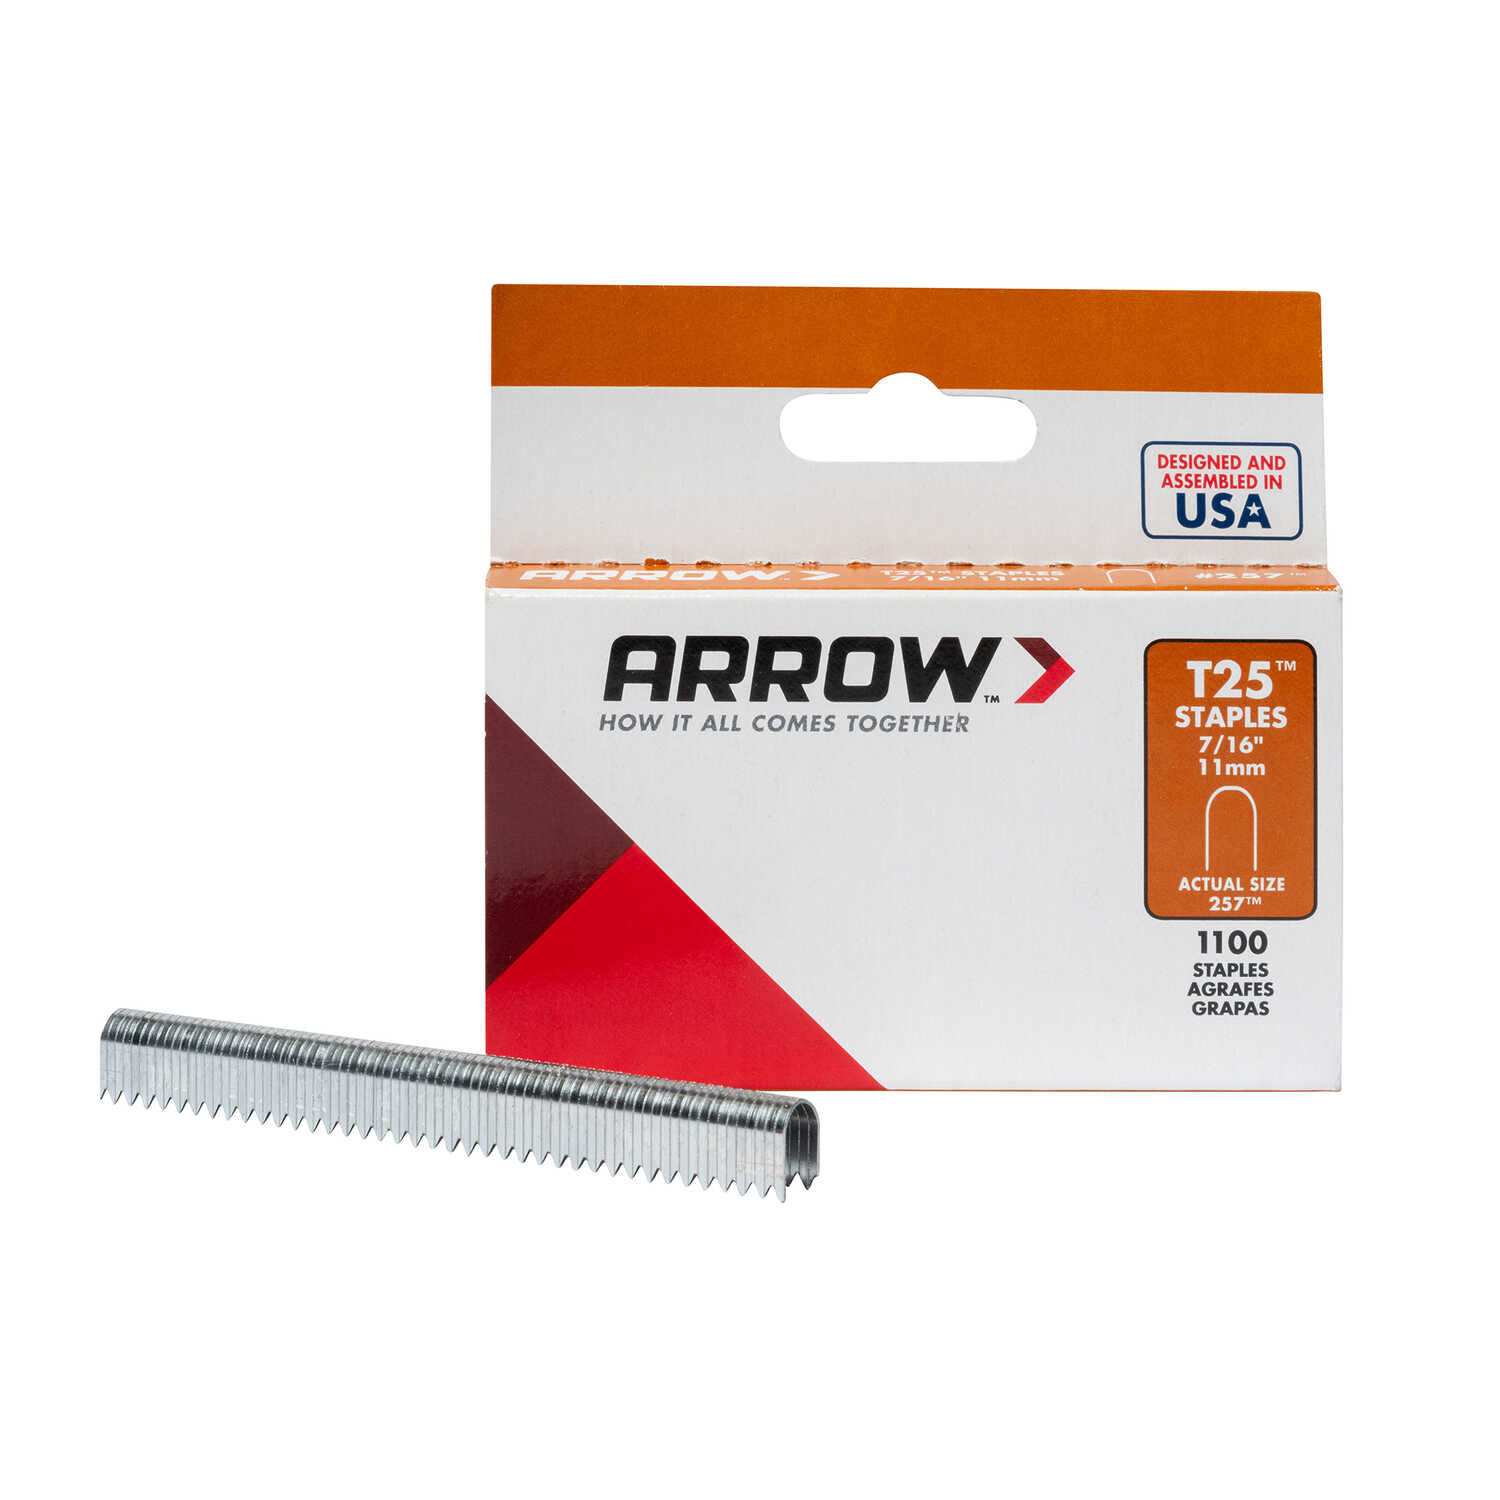 Arrow Fastener  7/16 in. L x 1/4 in. W Galvanized Steel  Round Crown  Wire Staples  18 Ga. 1000 pk